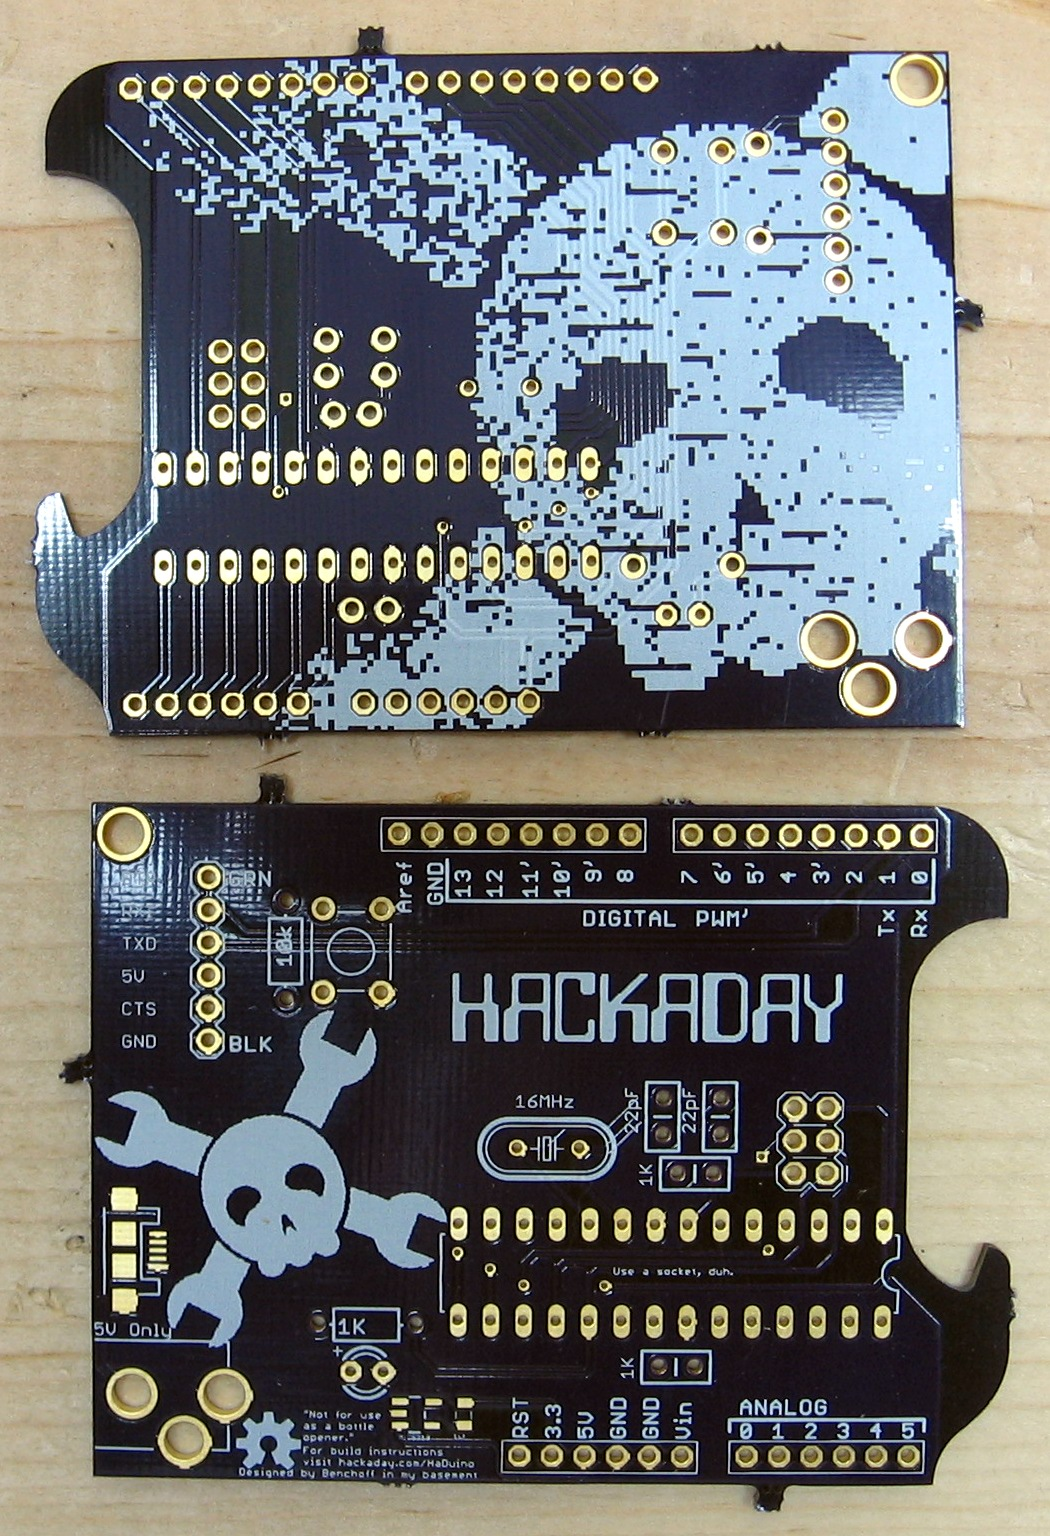 haduino-boards-front-and-back